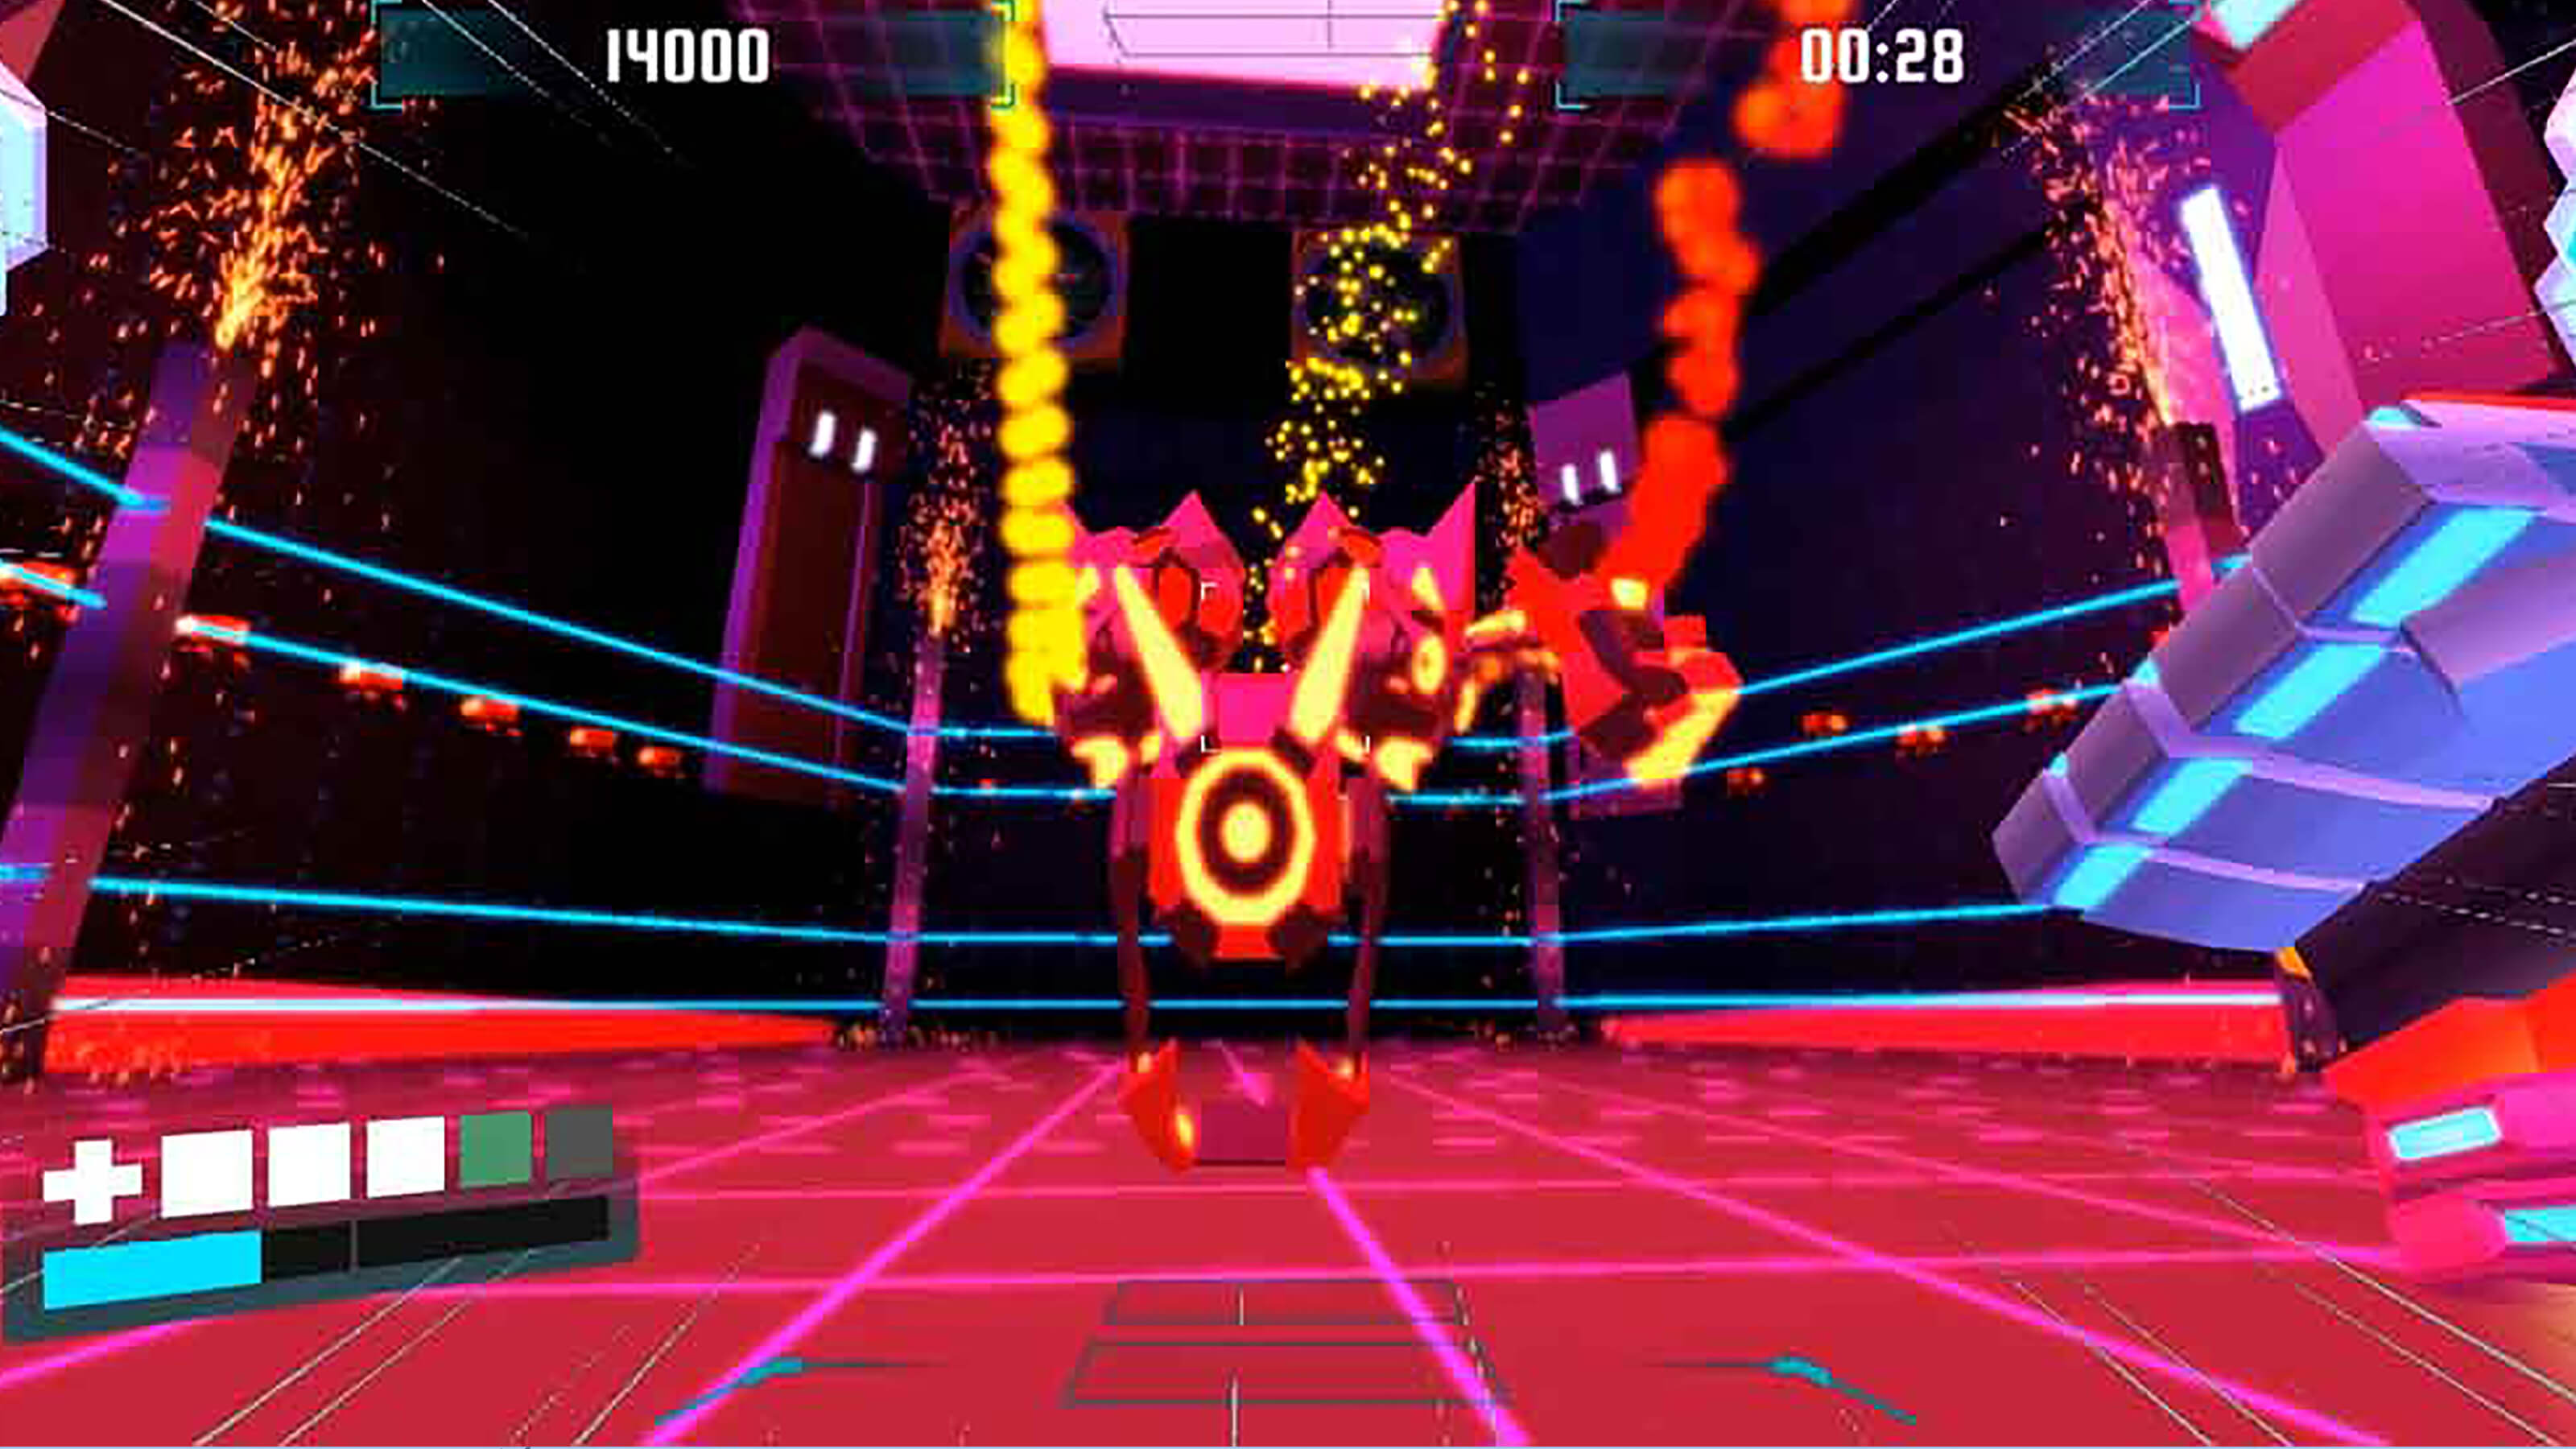 A large red and magenta robot with glowing orange highlights stands in a fighting ring lined by neon blue lasers.